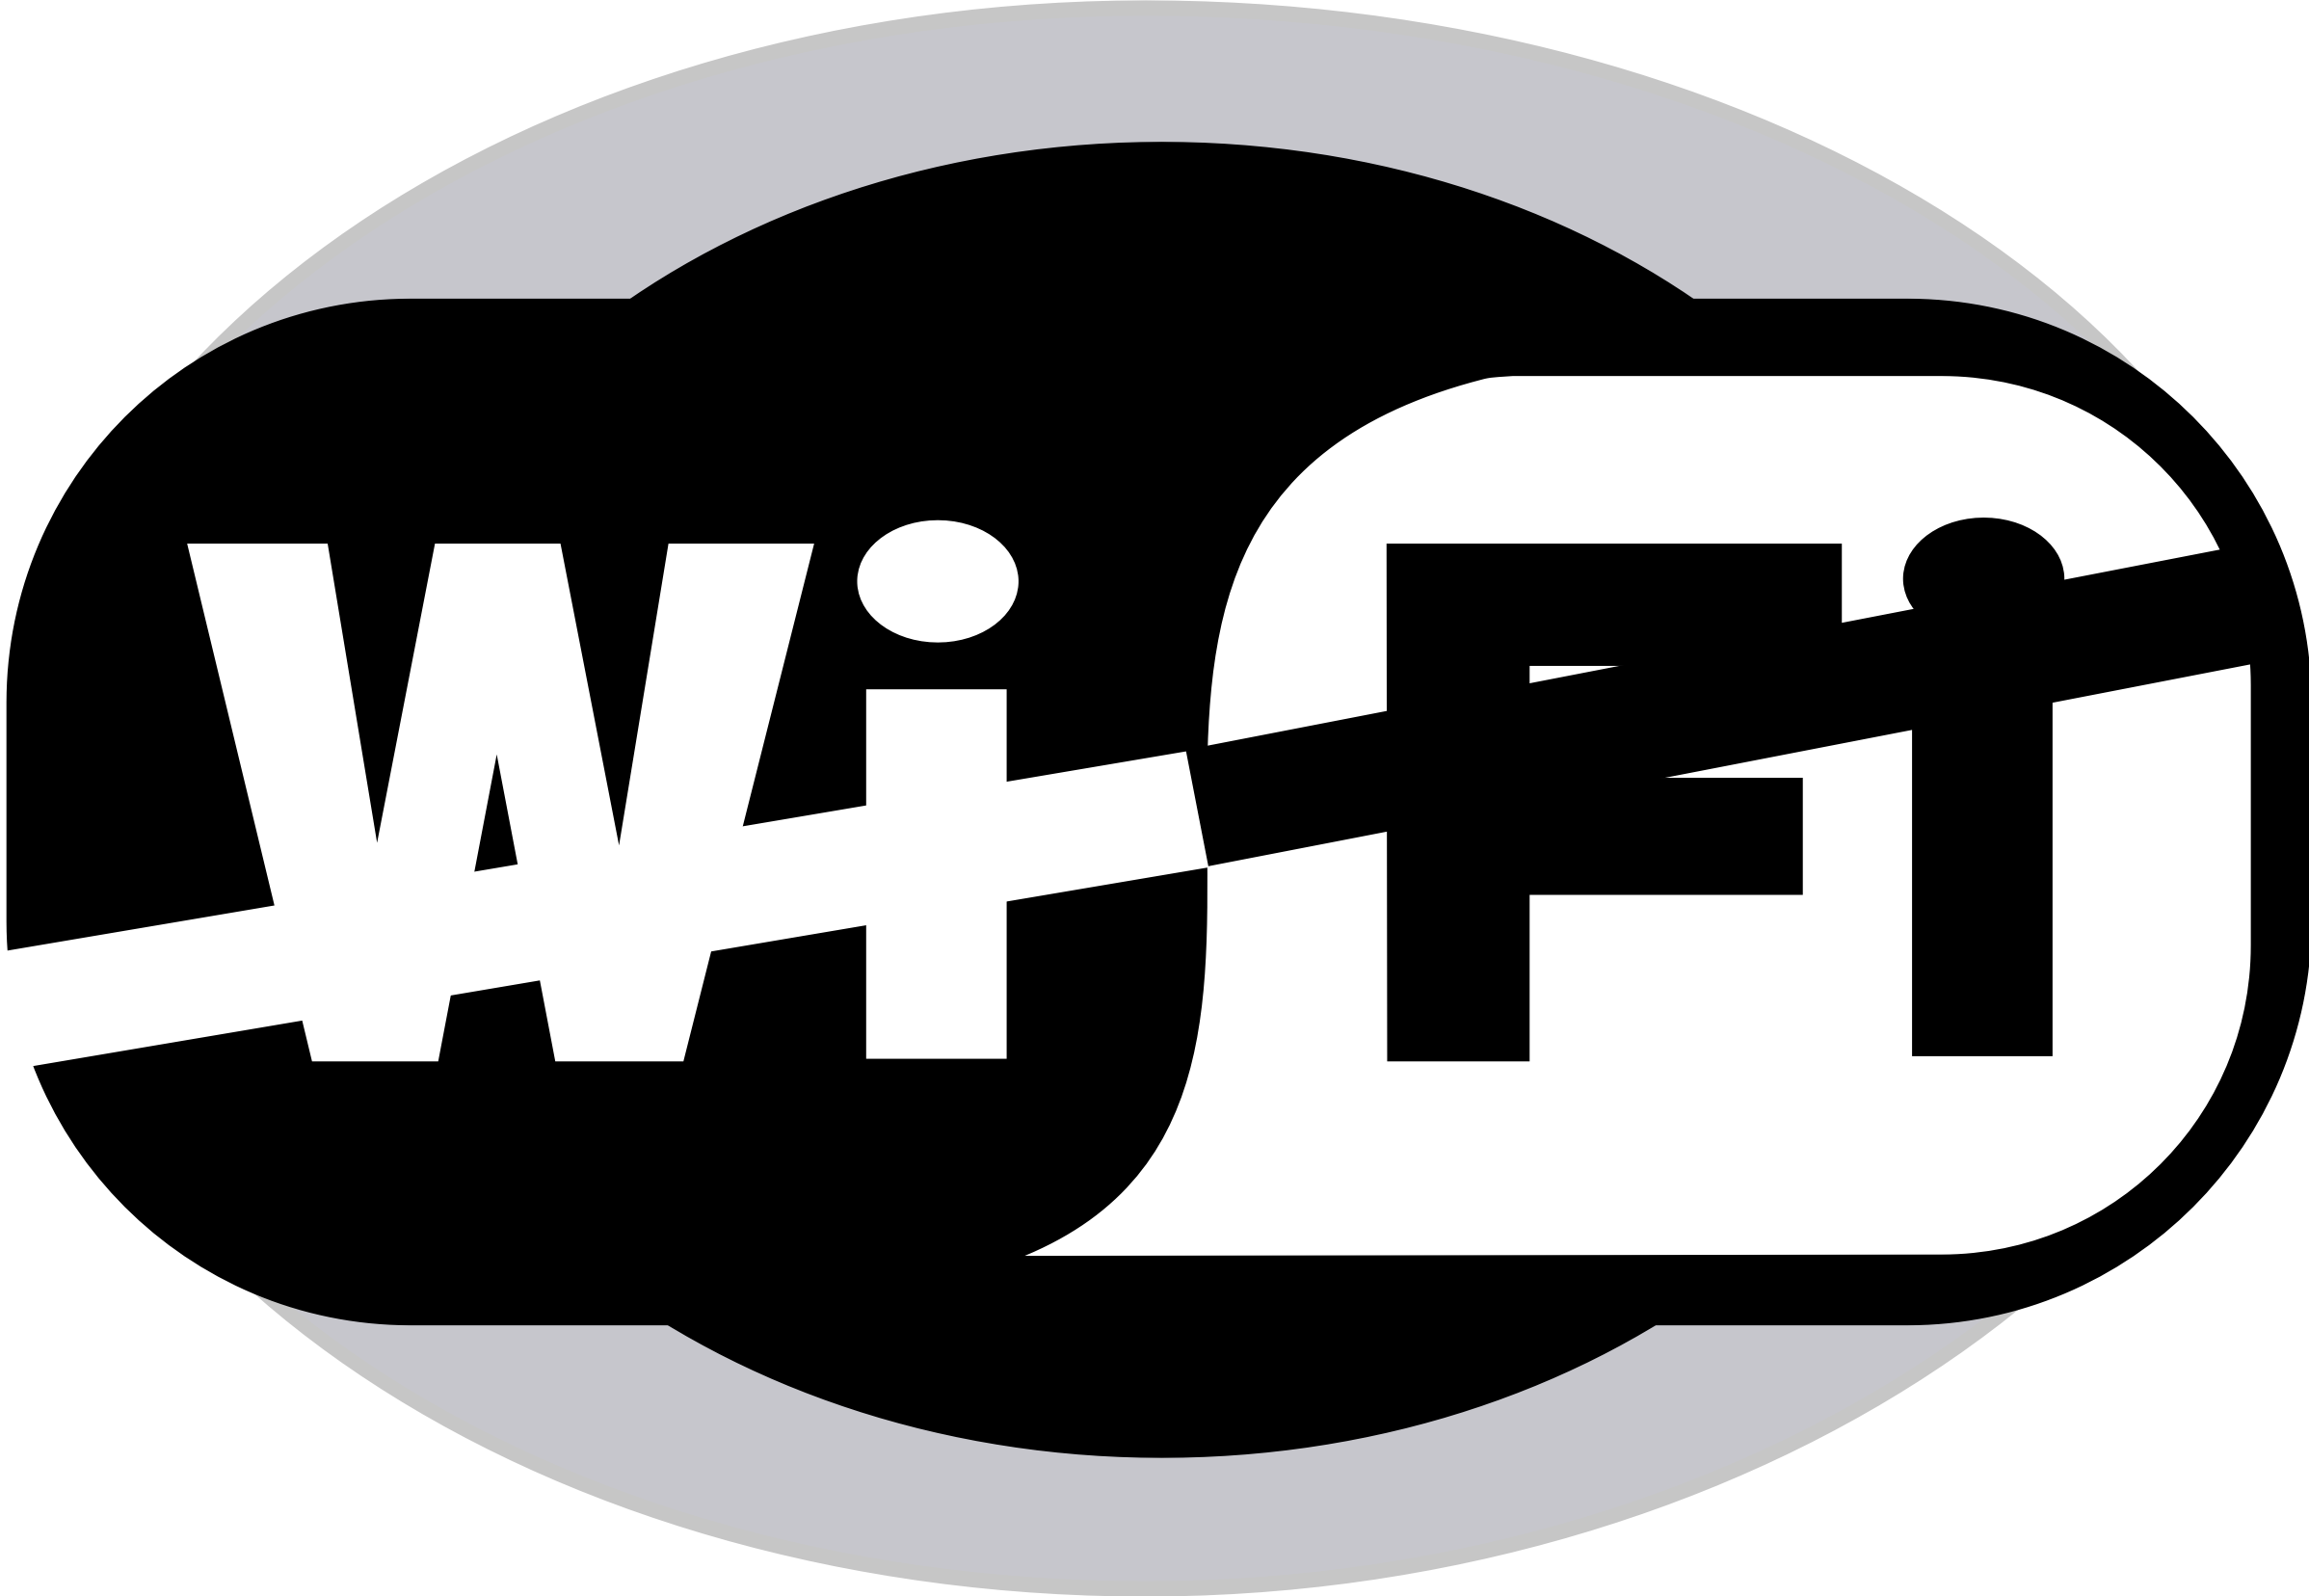 No clipart svg. Wifi here quiet zone